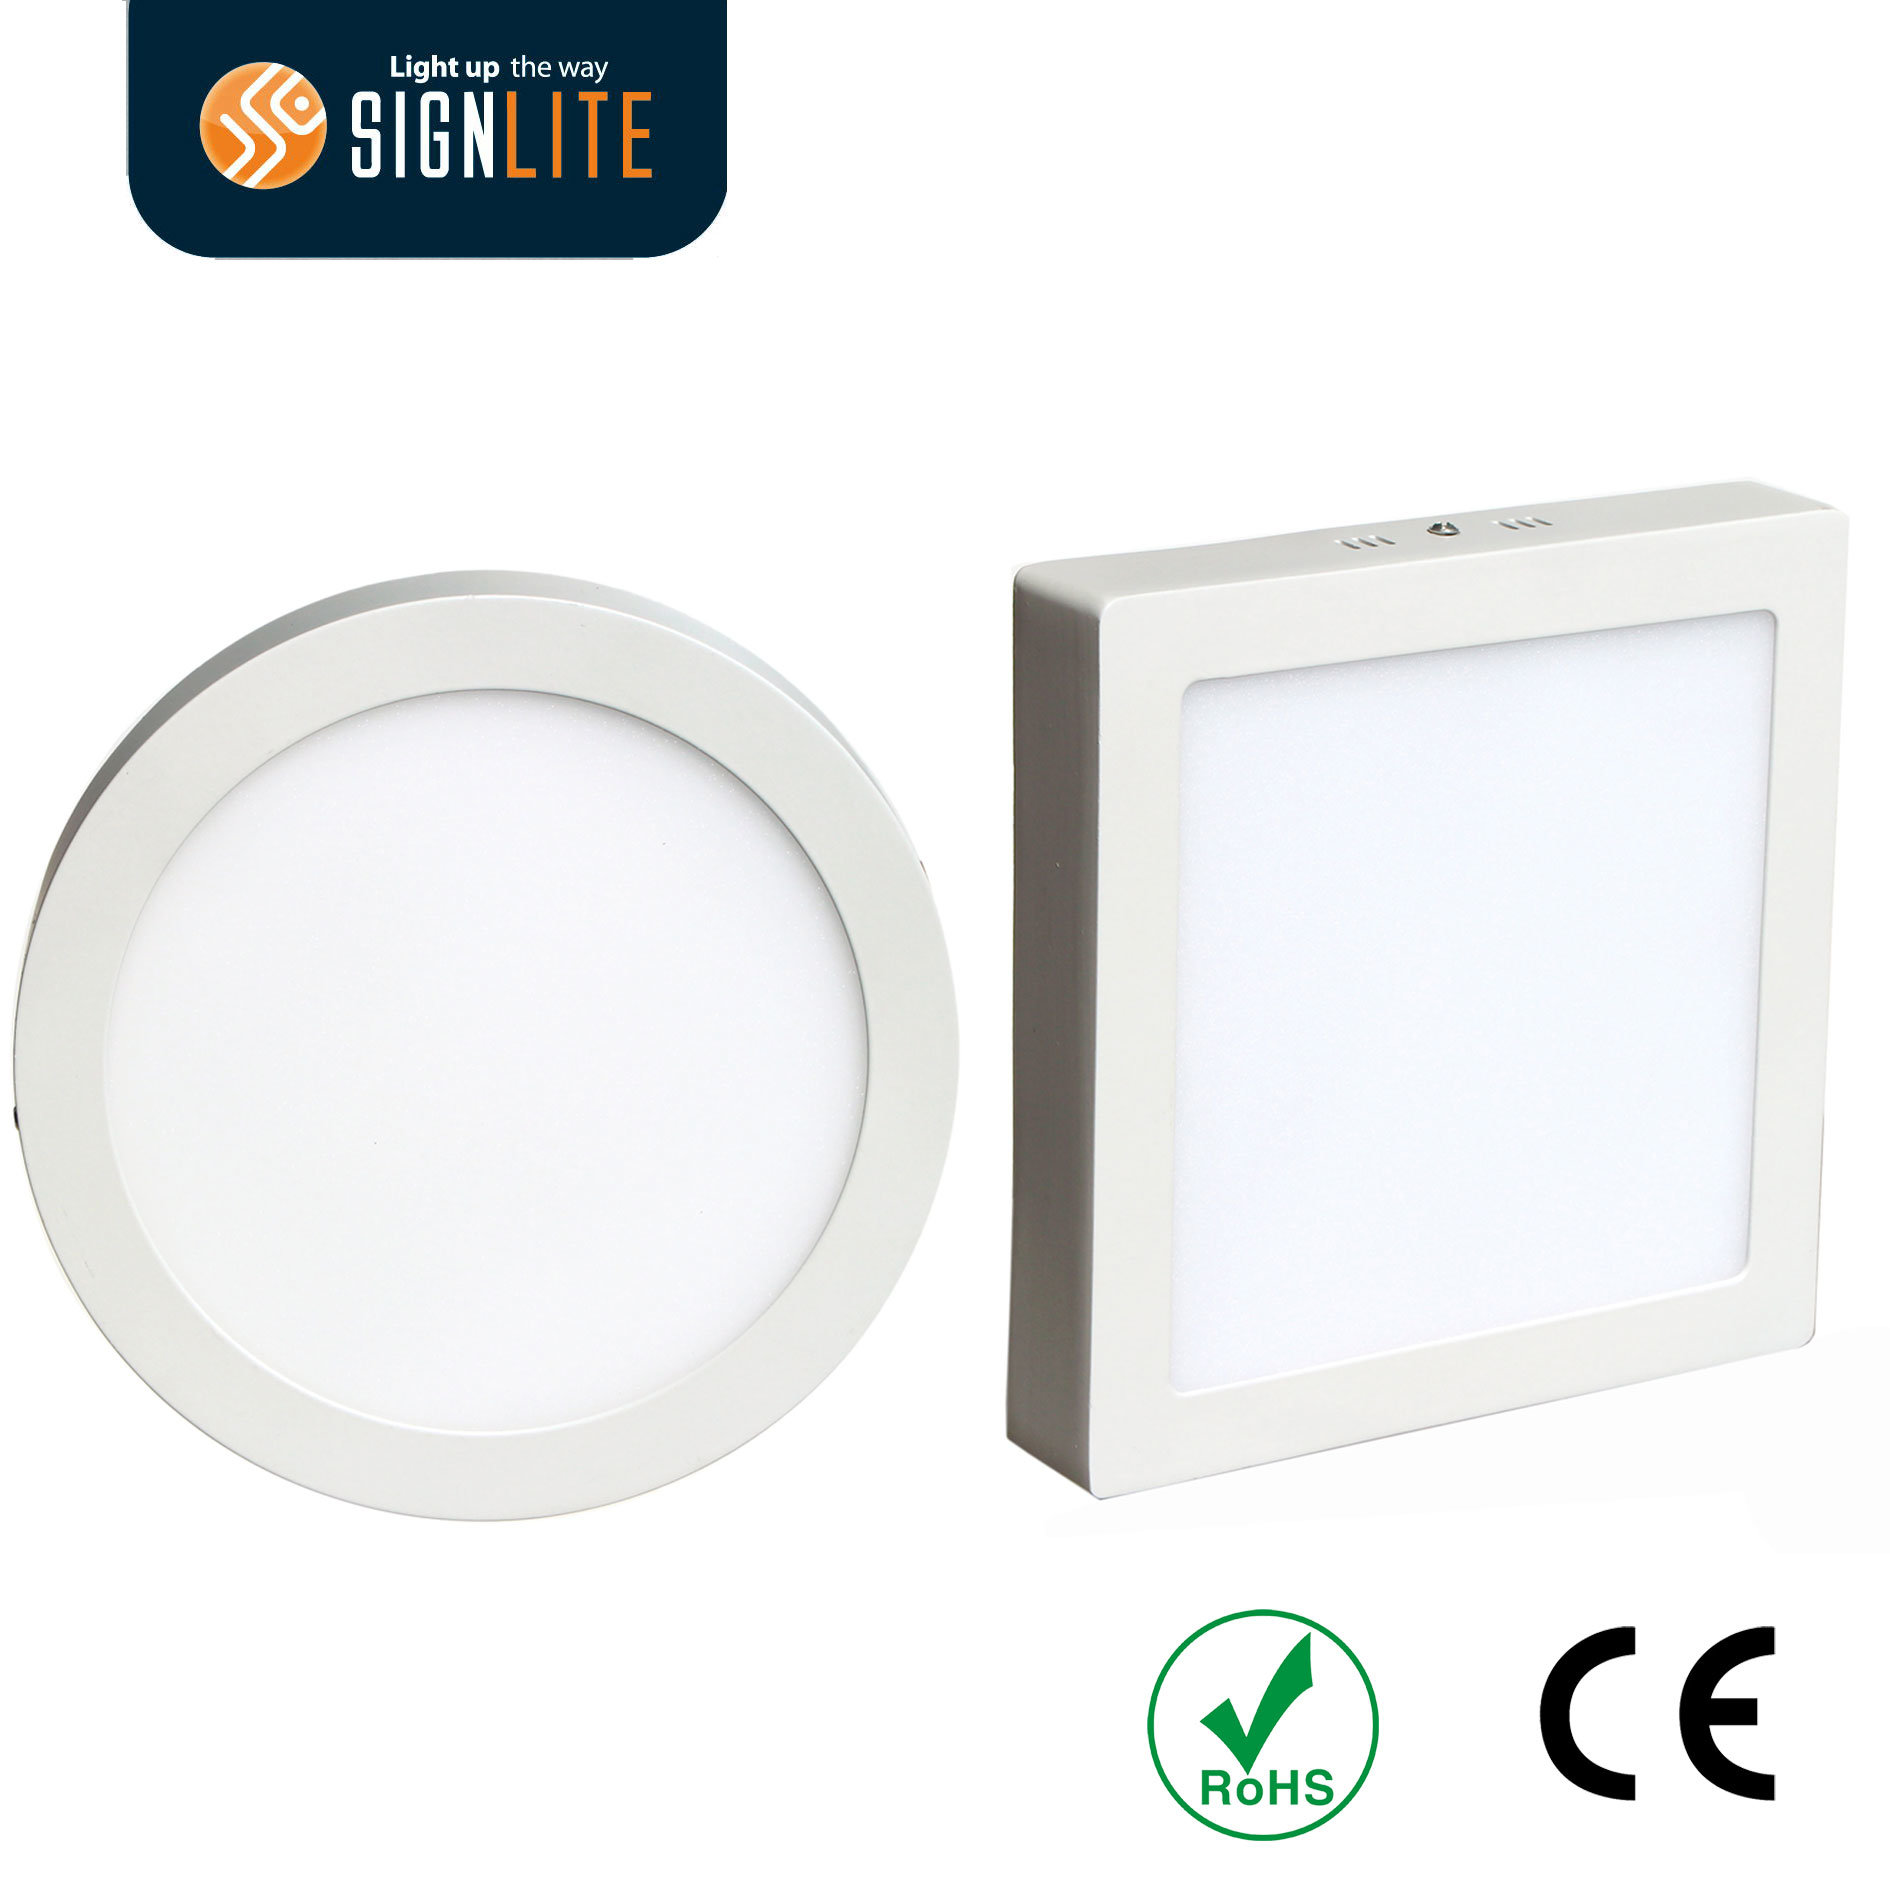 China Surface Mounting Installation Square Or Round 6W 12W 18W 24W LED Downlight Panel Light